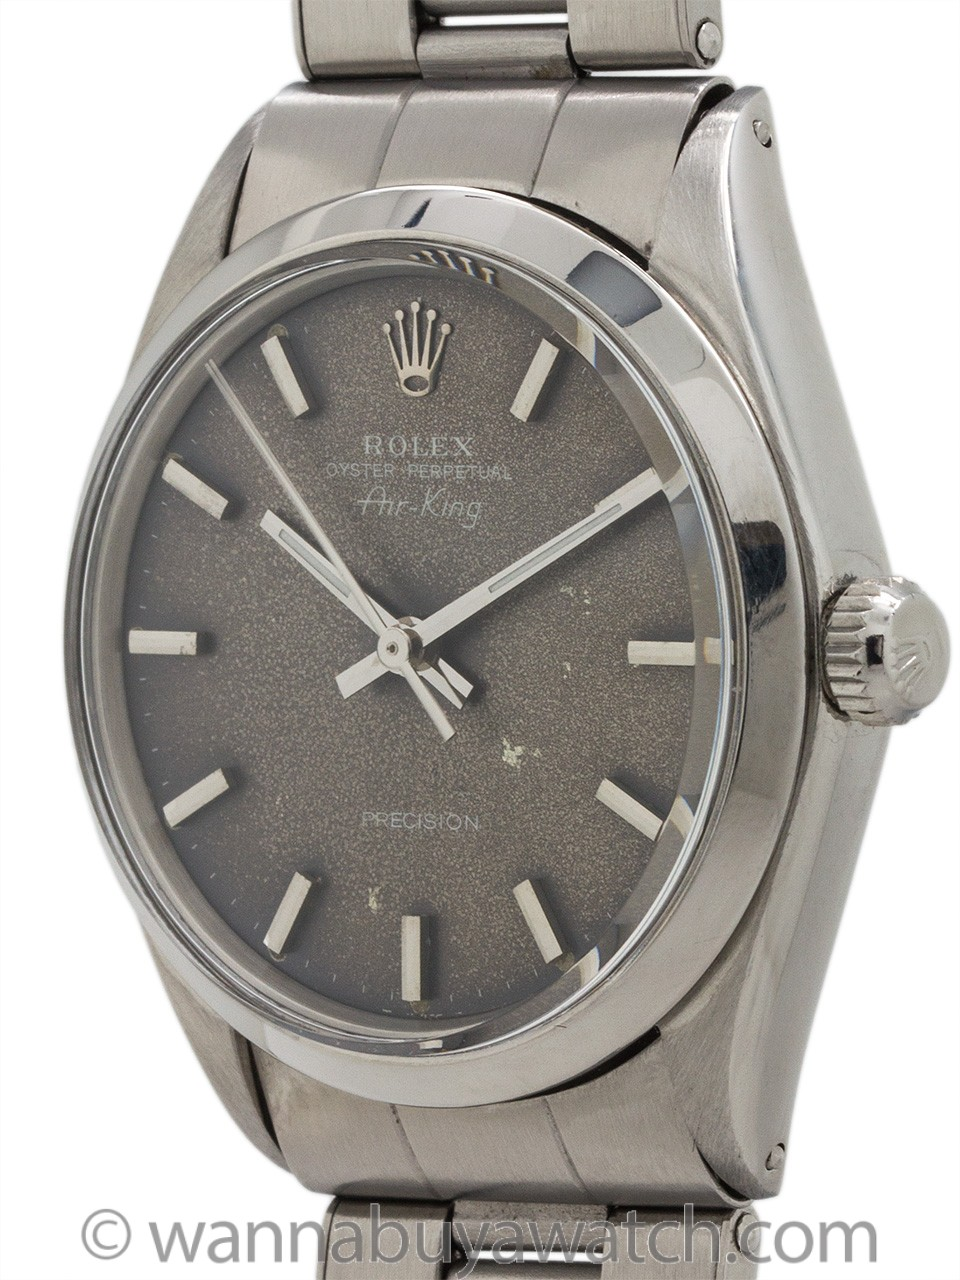 Rolex Oyster Perpetual Airking ref 5500 Tropical Dial circa 1968